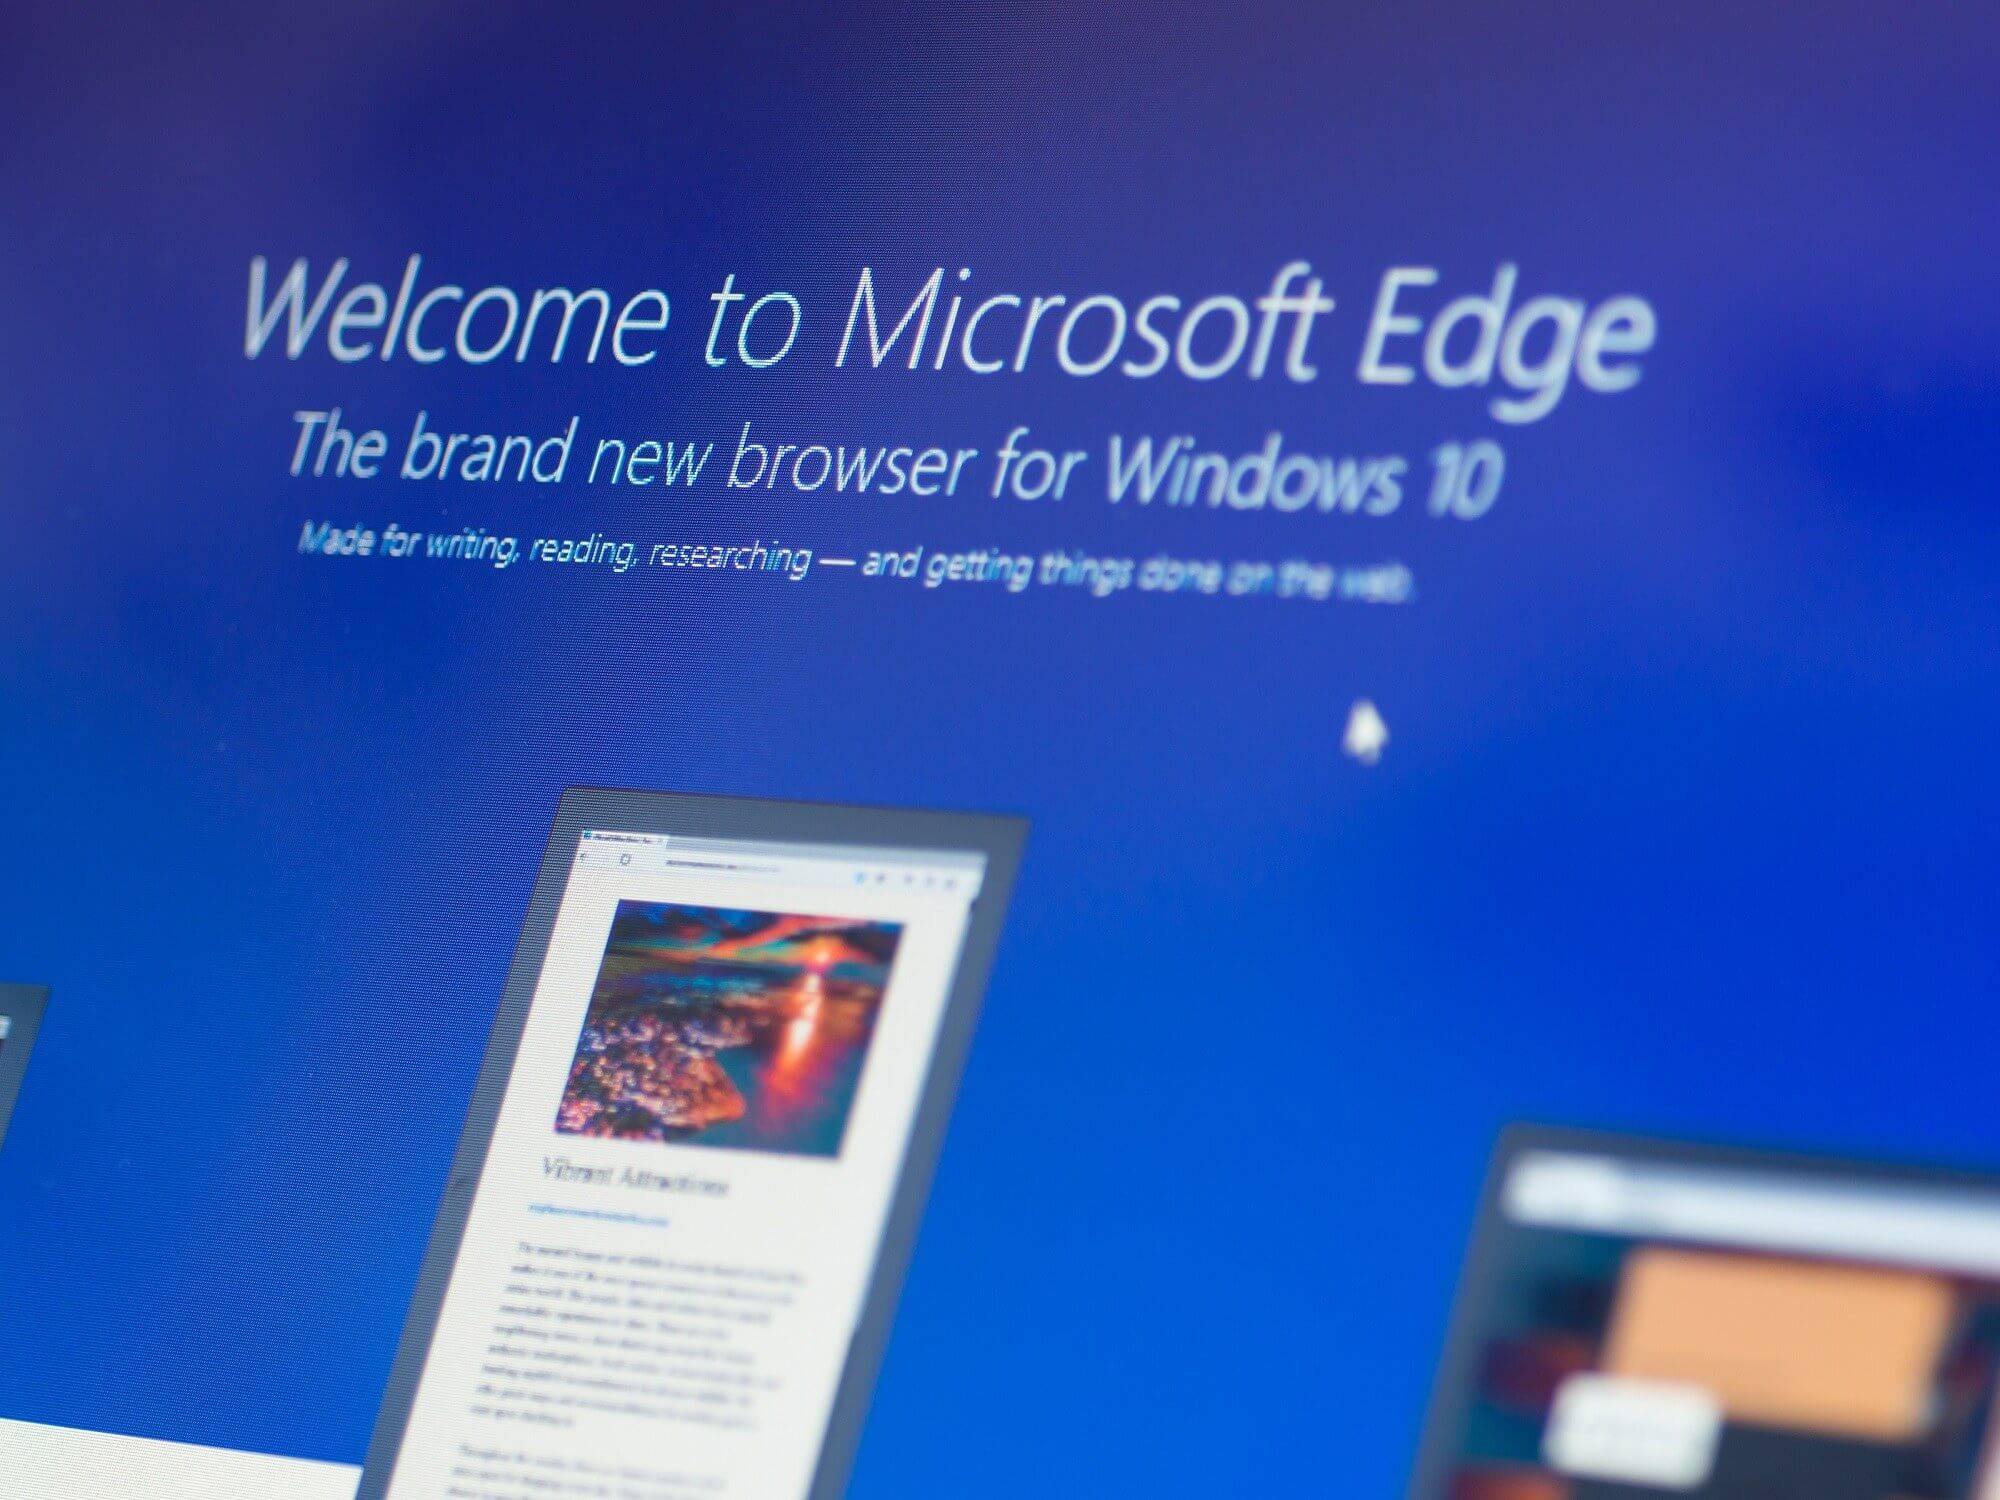 Confirmed: Microsoft is replacing Edge with a Chromium-powered browser